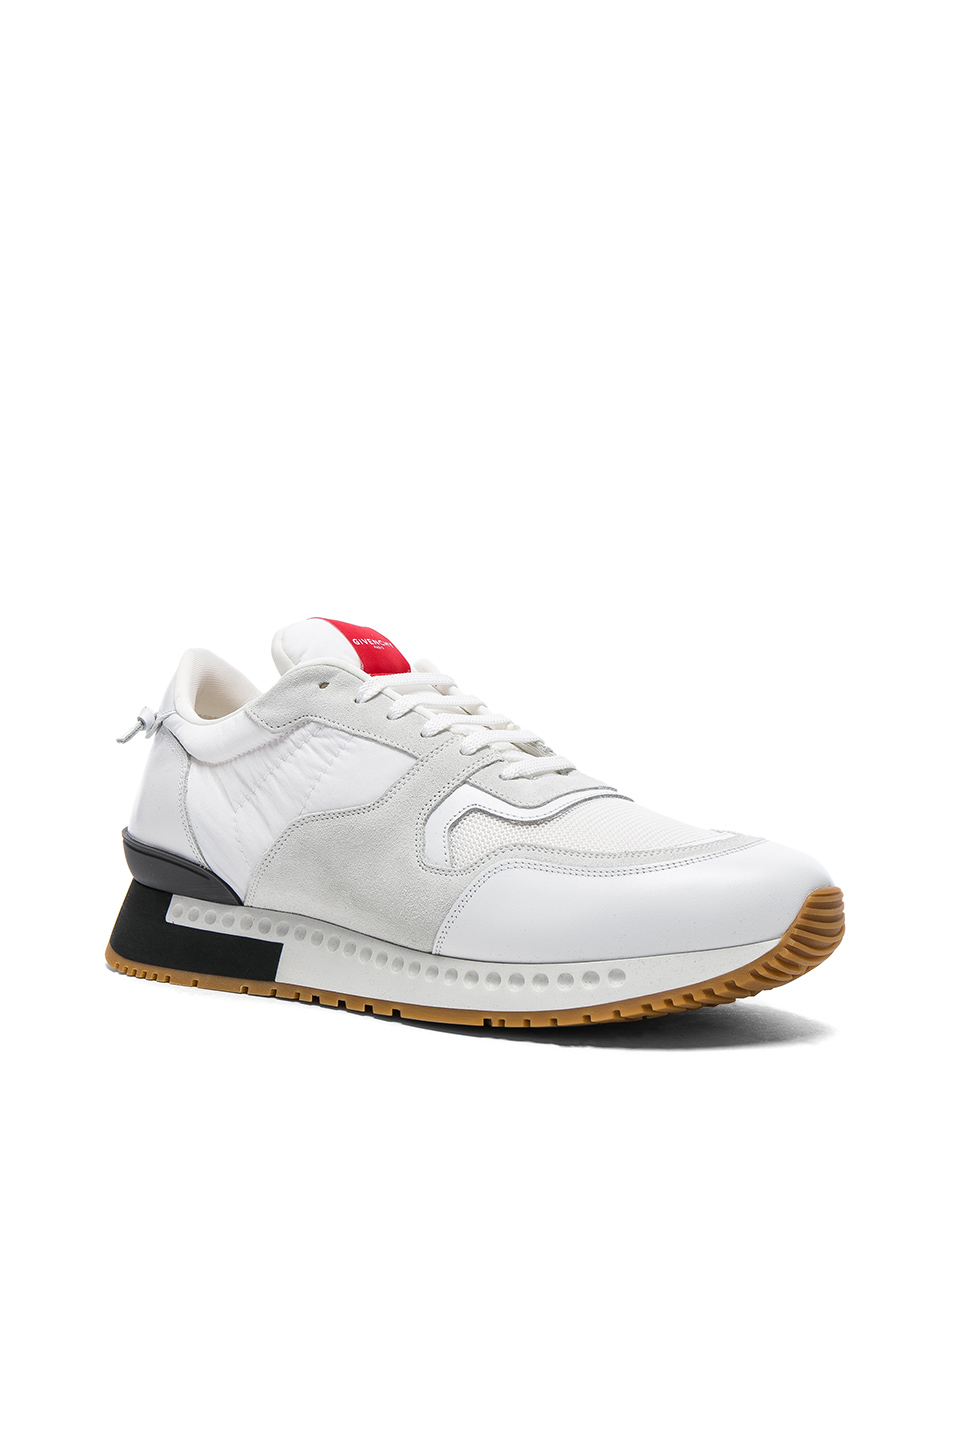 Givenchy Runner Active Sneakers in White